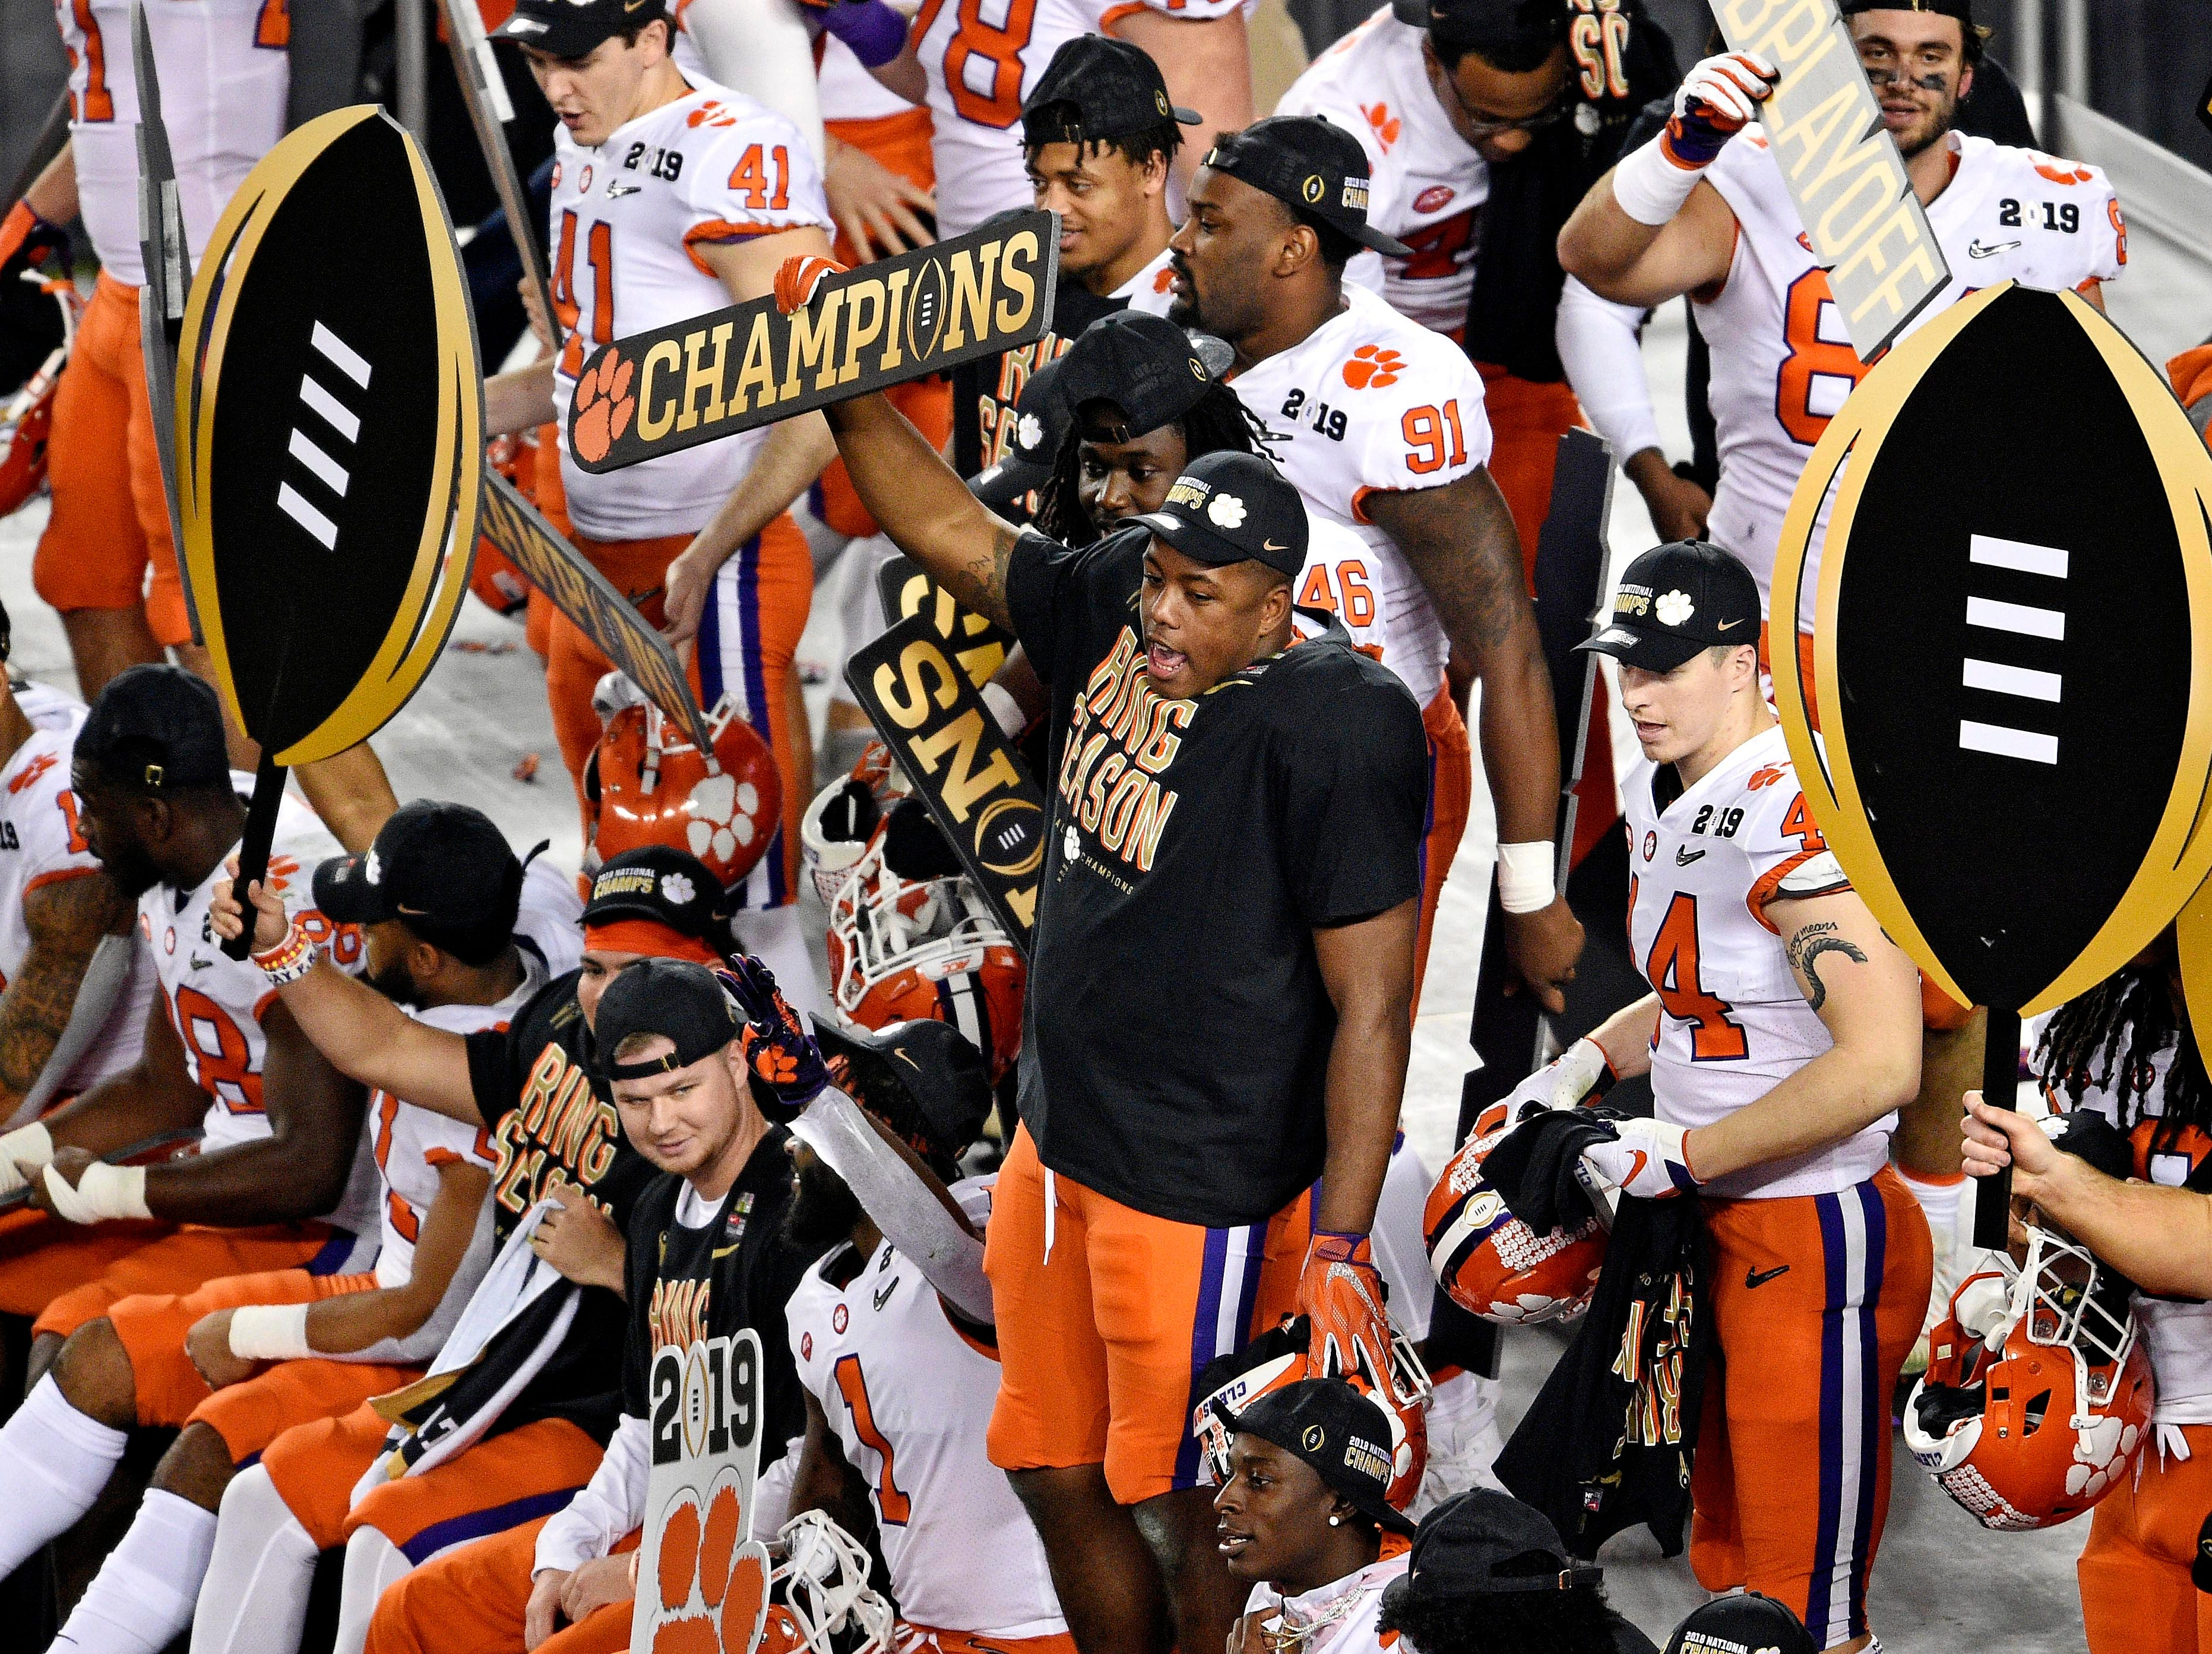 Clemson players celebrate the national championship.